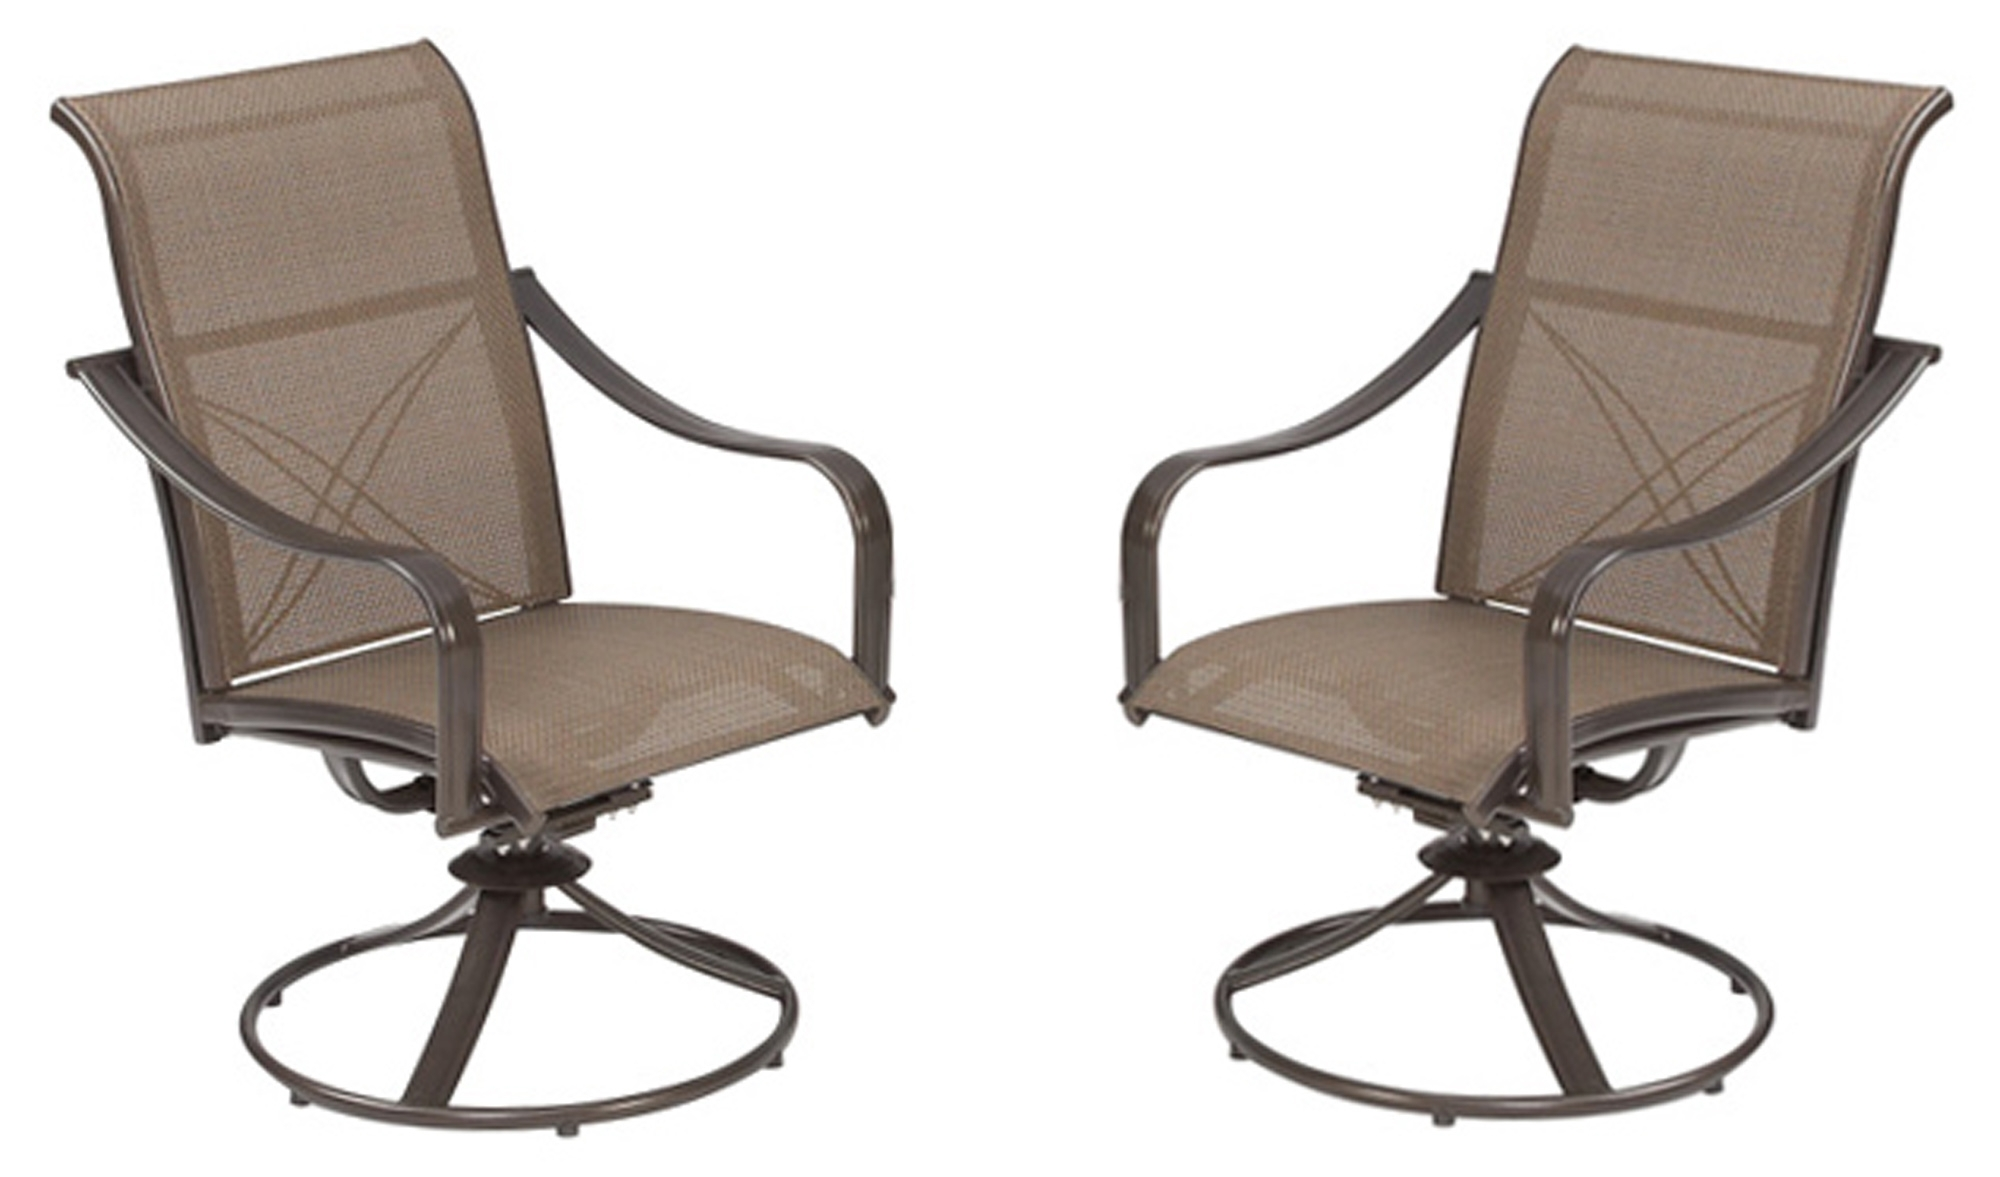 Preferred Casual Living Worldwide Recalls Swivel Patio Chairs Due To Black With Hampton Bay Rocking Patio Chairs (View 9 of 15)